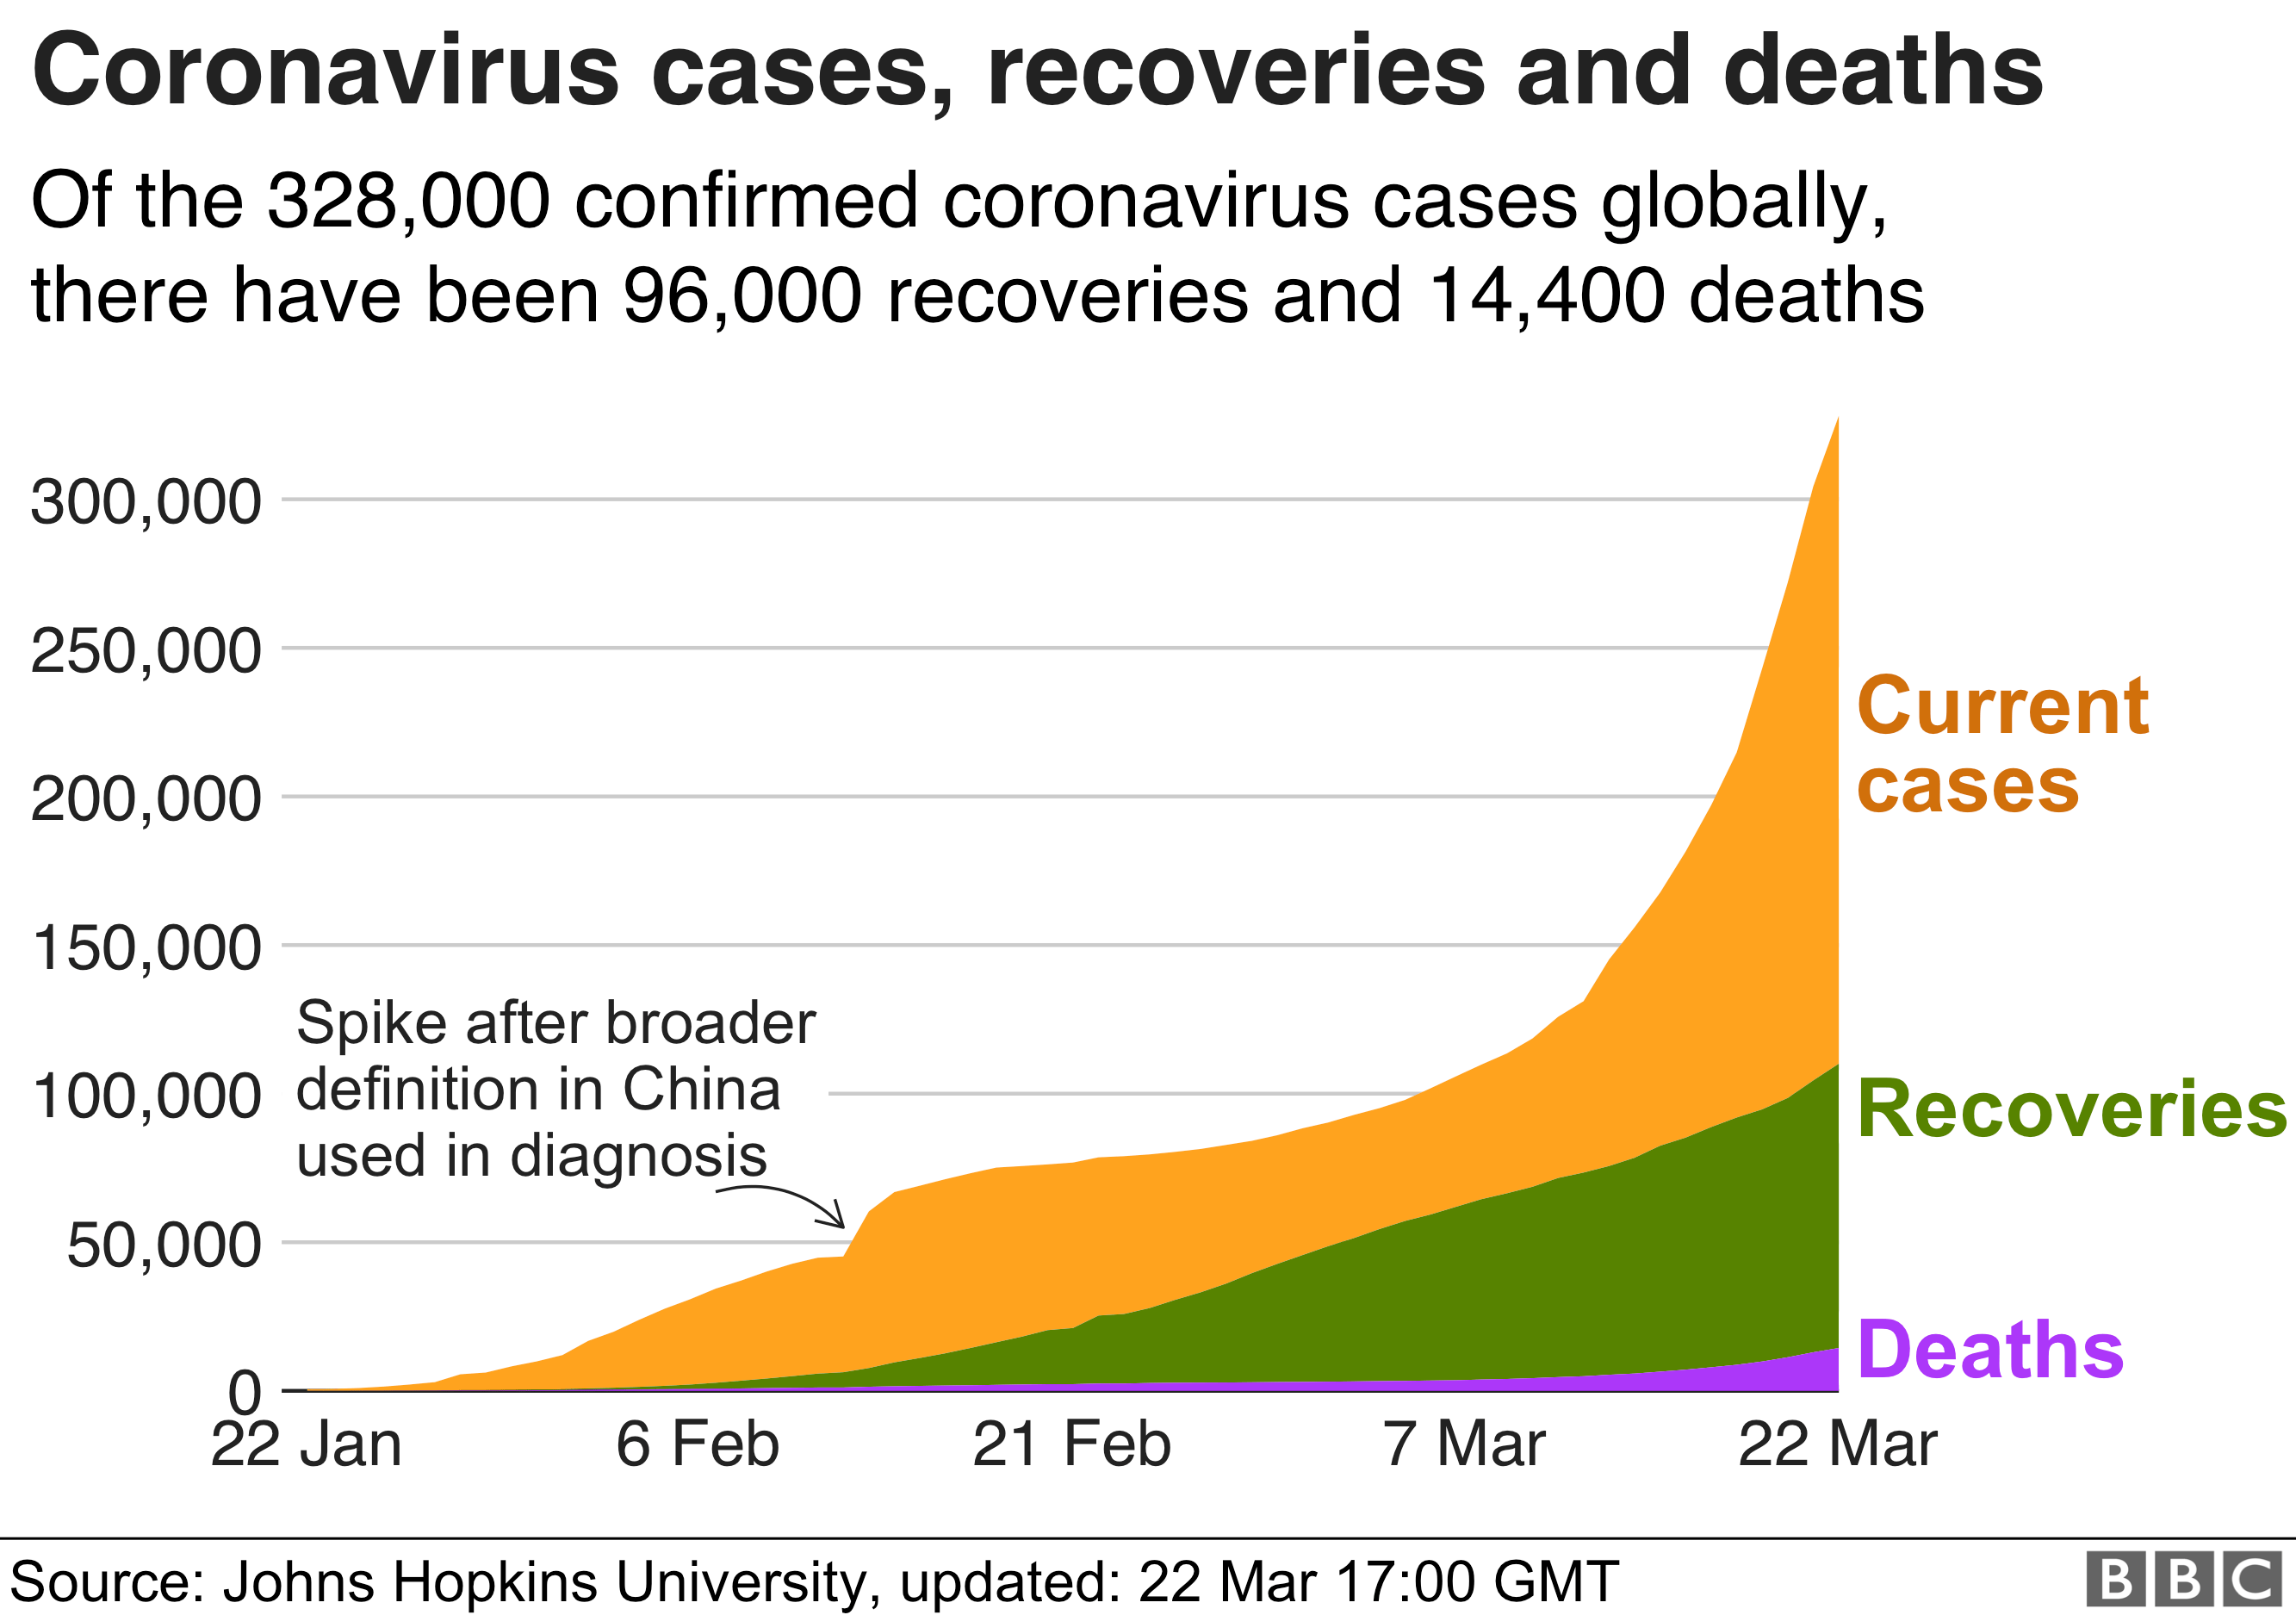 Area chart showing number of cases, recoveries and deaths